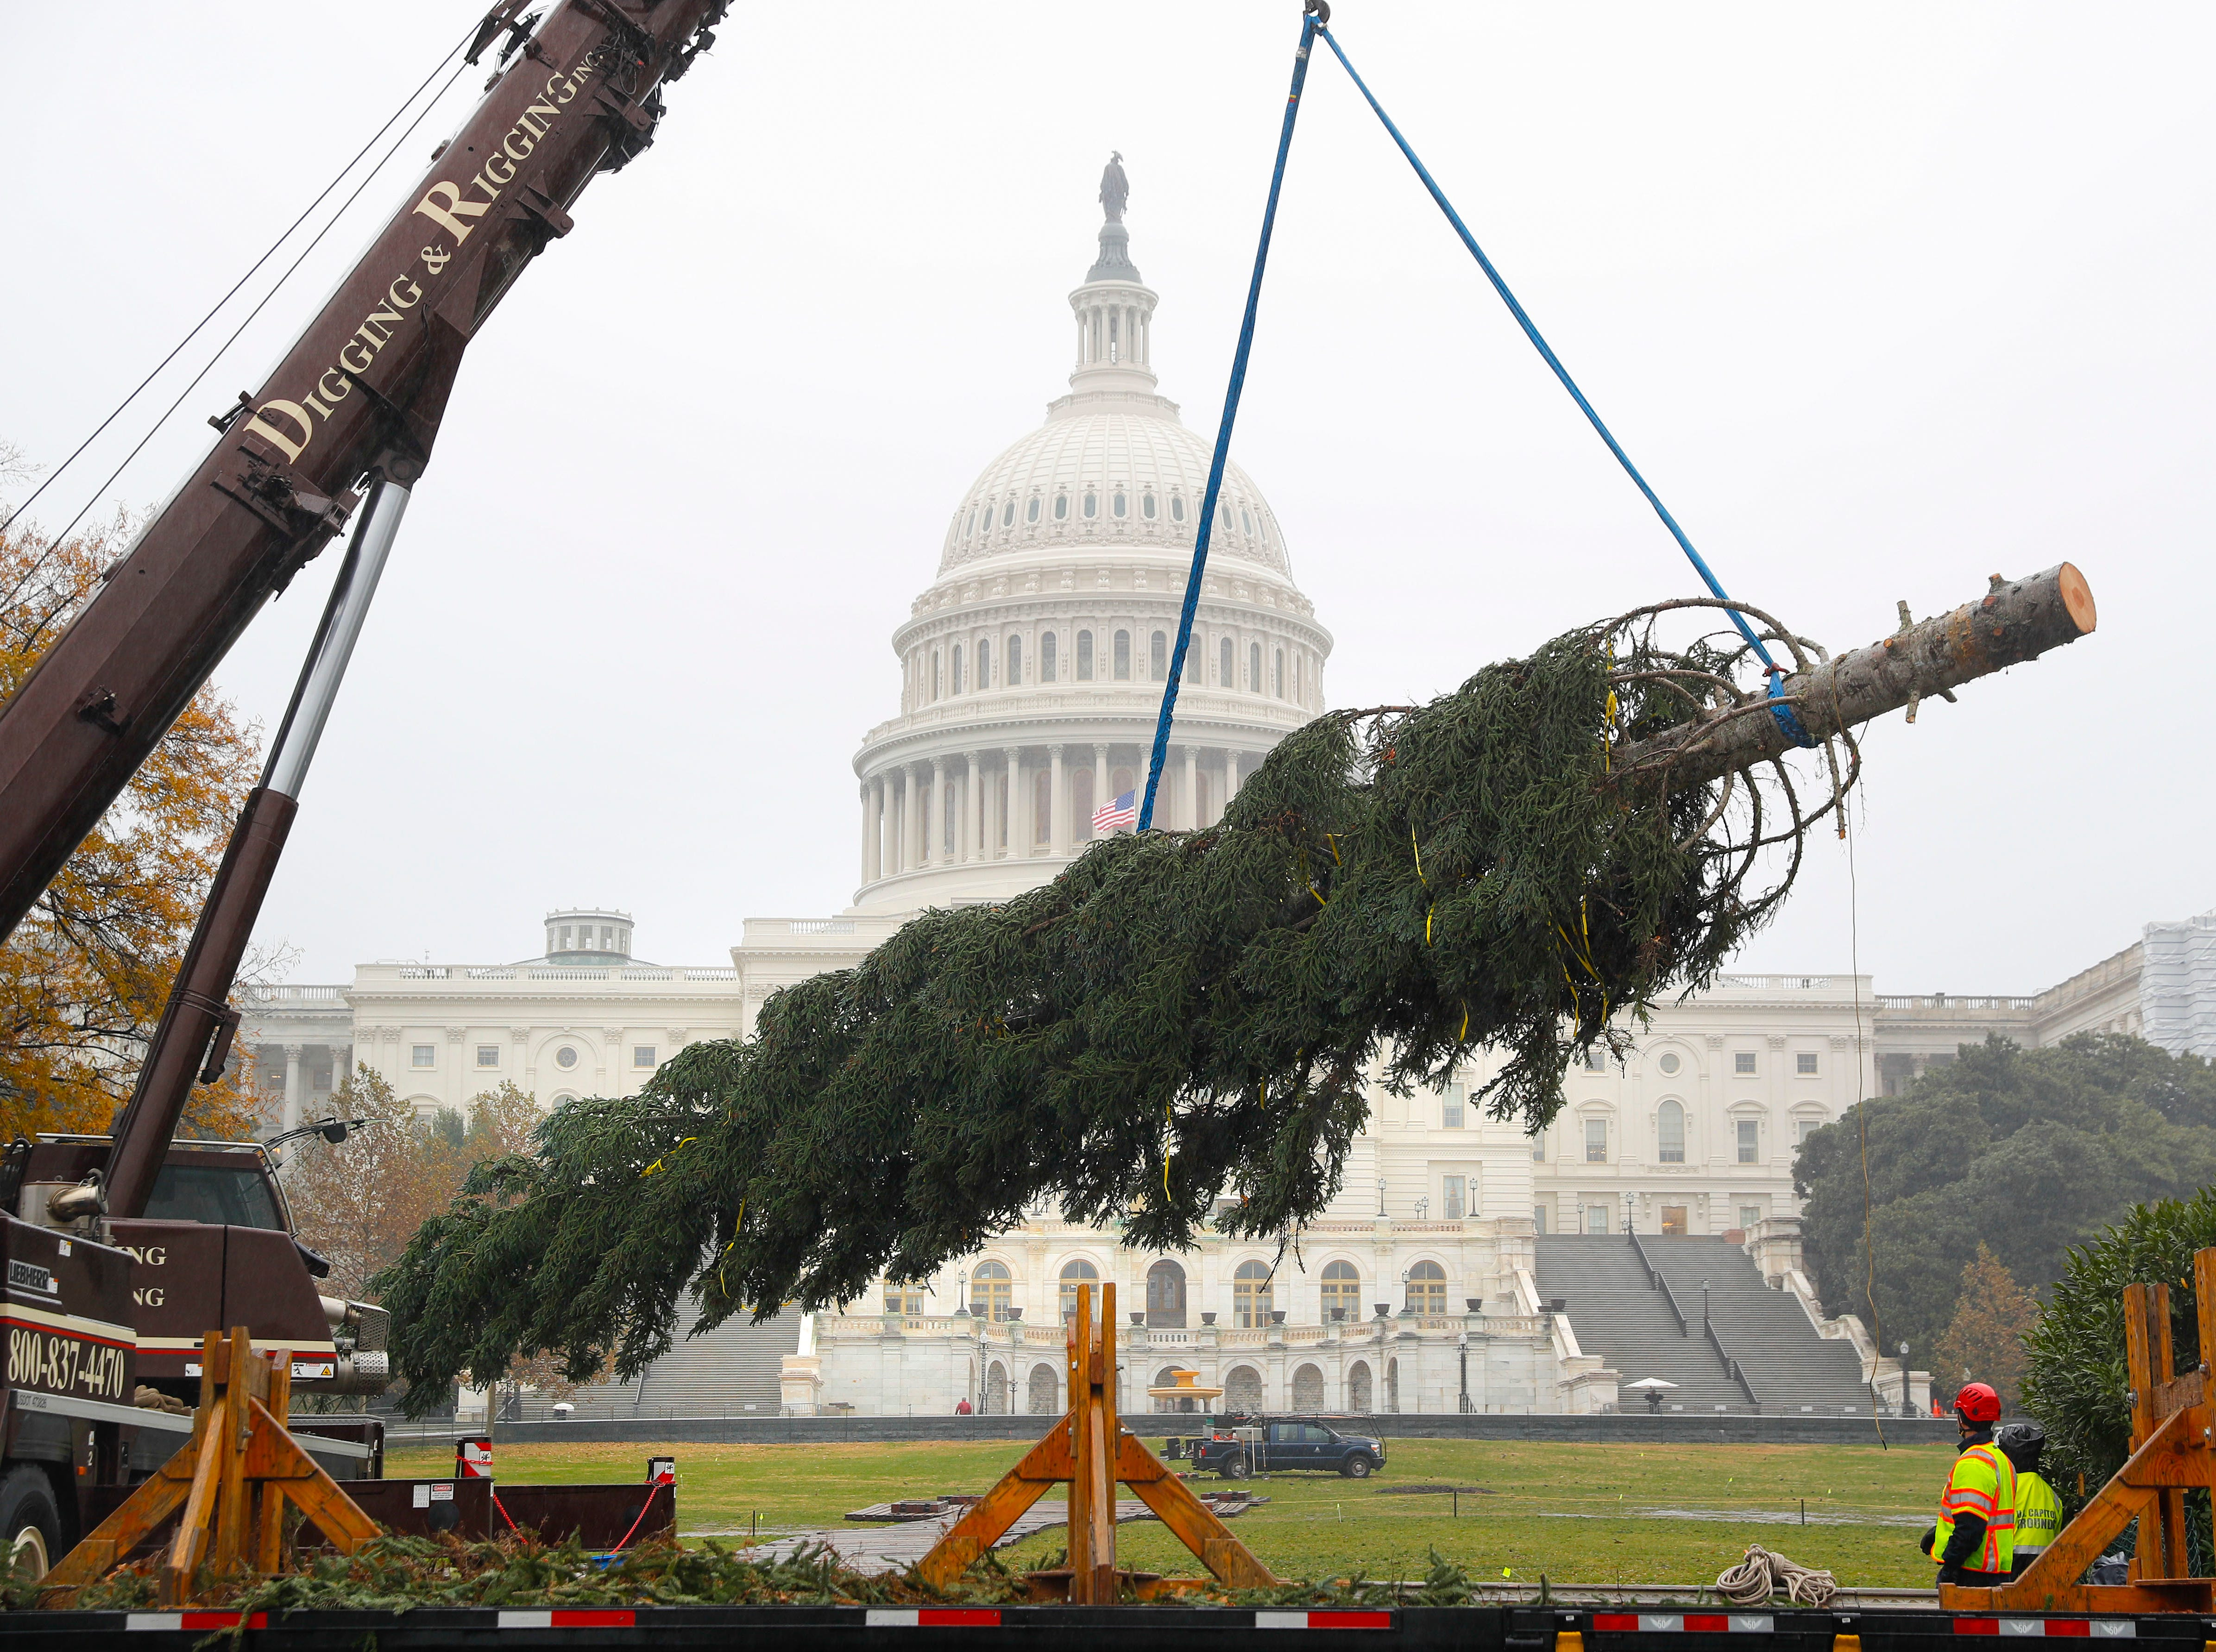 Workers move the 2018 U.S. Capitol Christmas Tree as it arrives in Washington, D.C., Monday, Nov. 26, 2018.